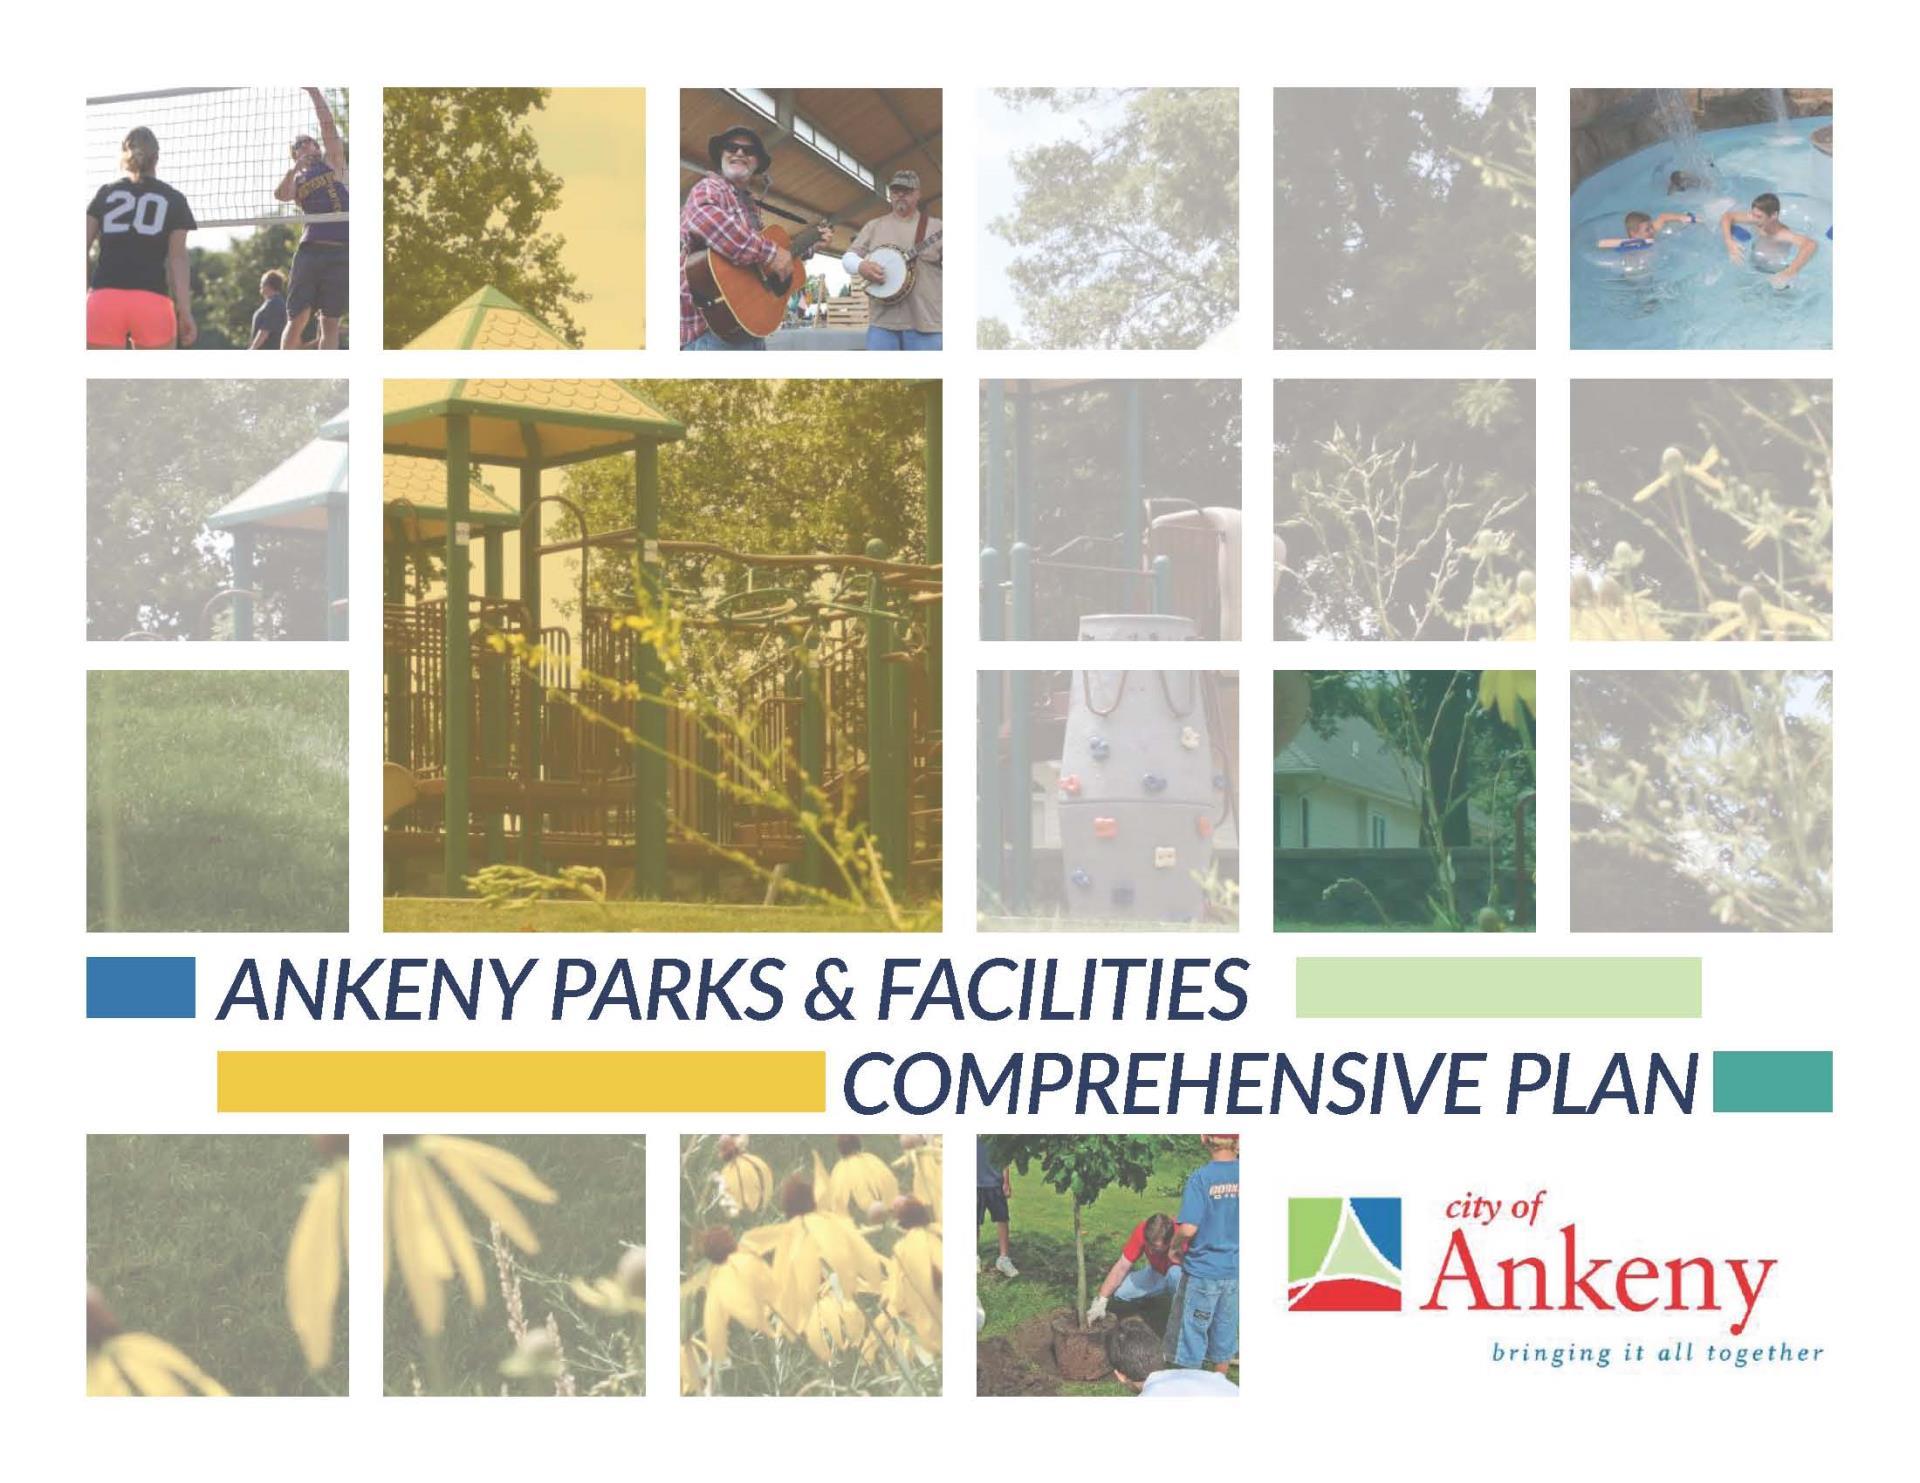 2019 Ankeny Parks & Facilities Comprehensive Plan cover